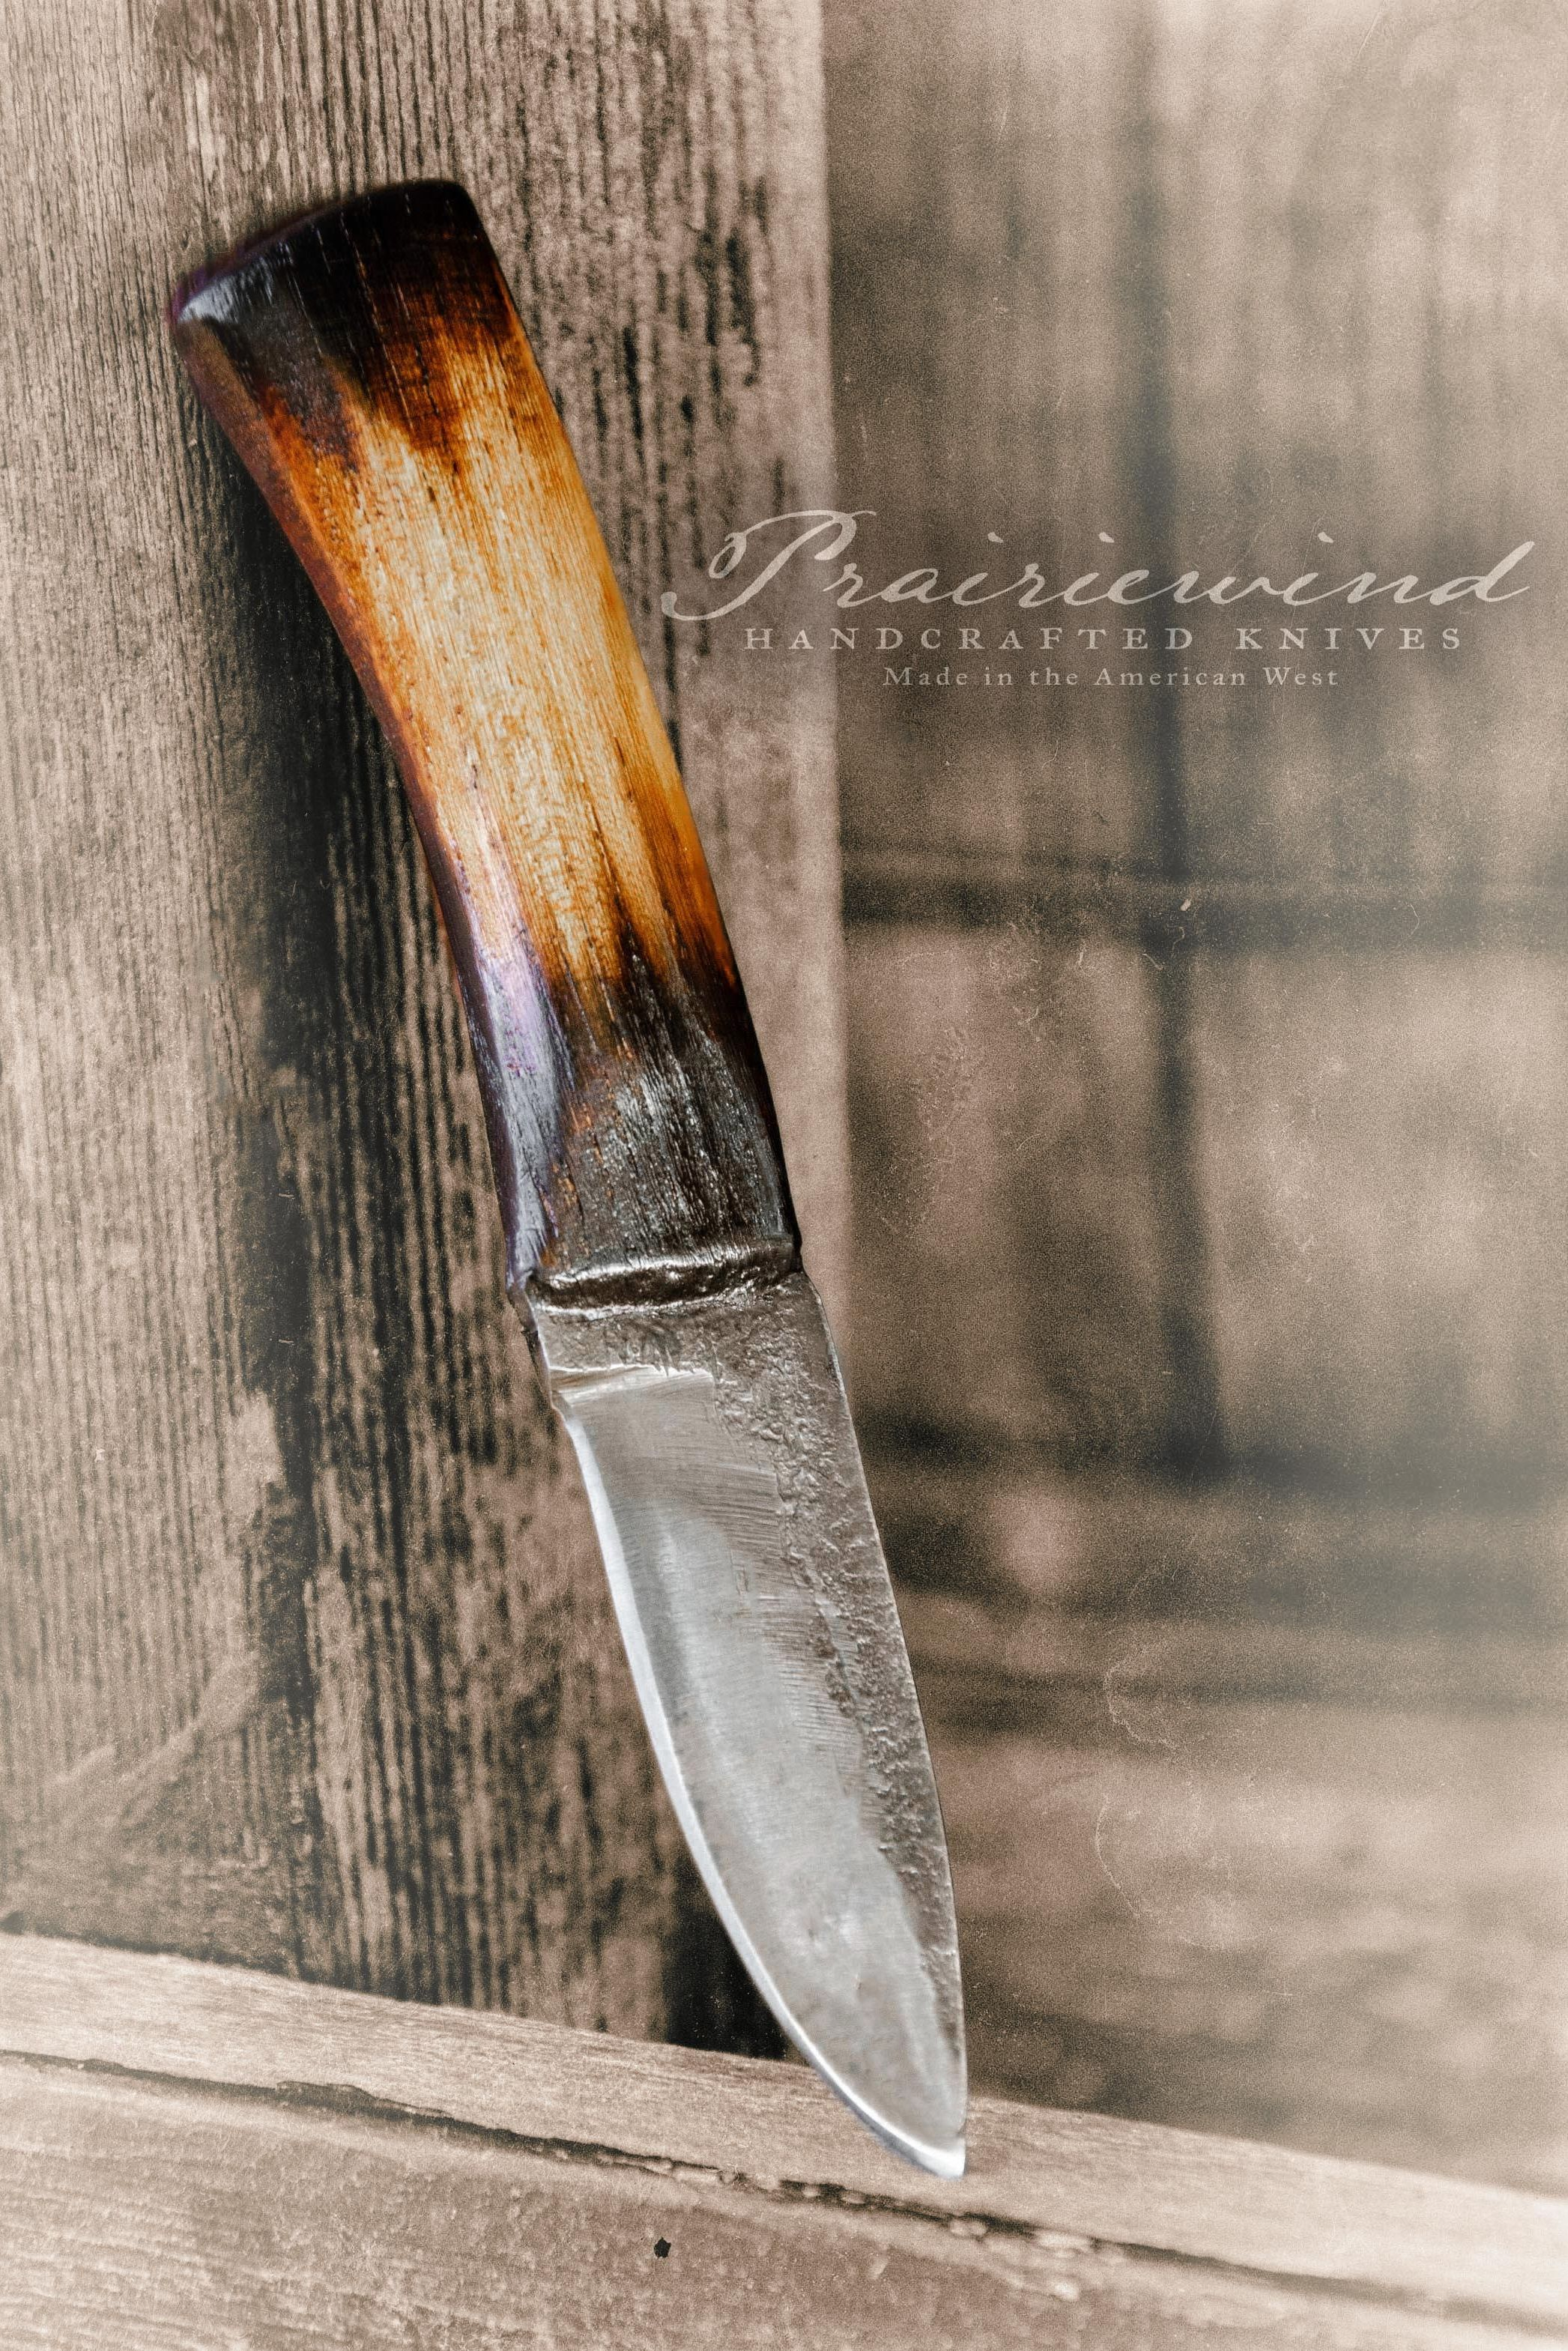 Classic Western Hand Forged Knives Find Me On Instagram Prairiewindknives Knife Hand Forged Knife Forged Knife